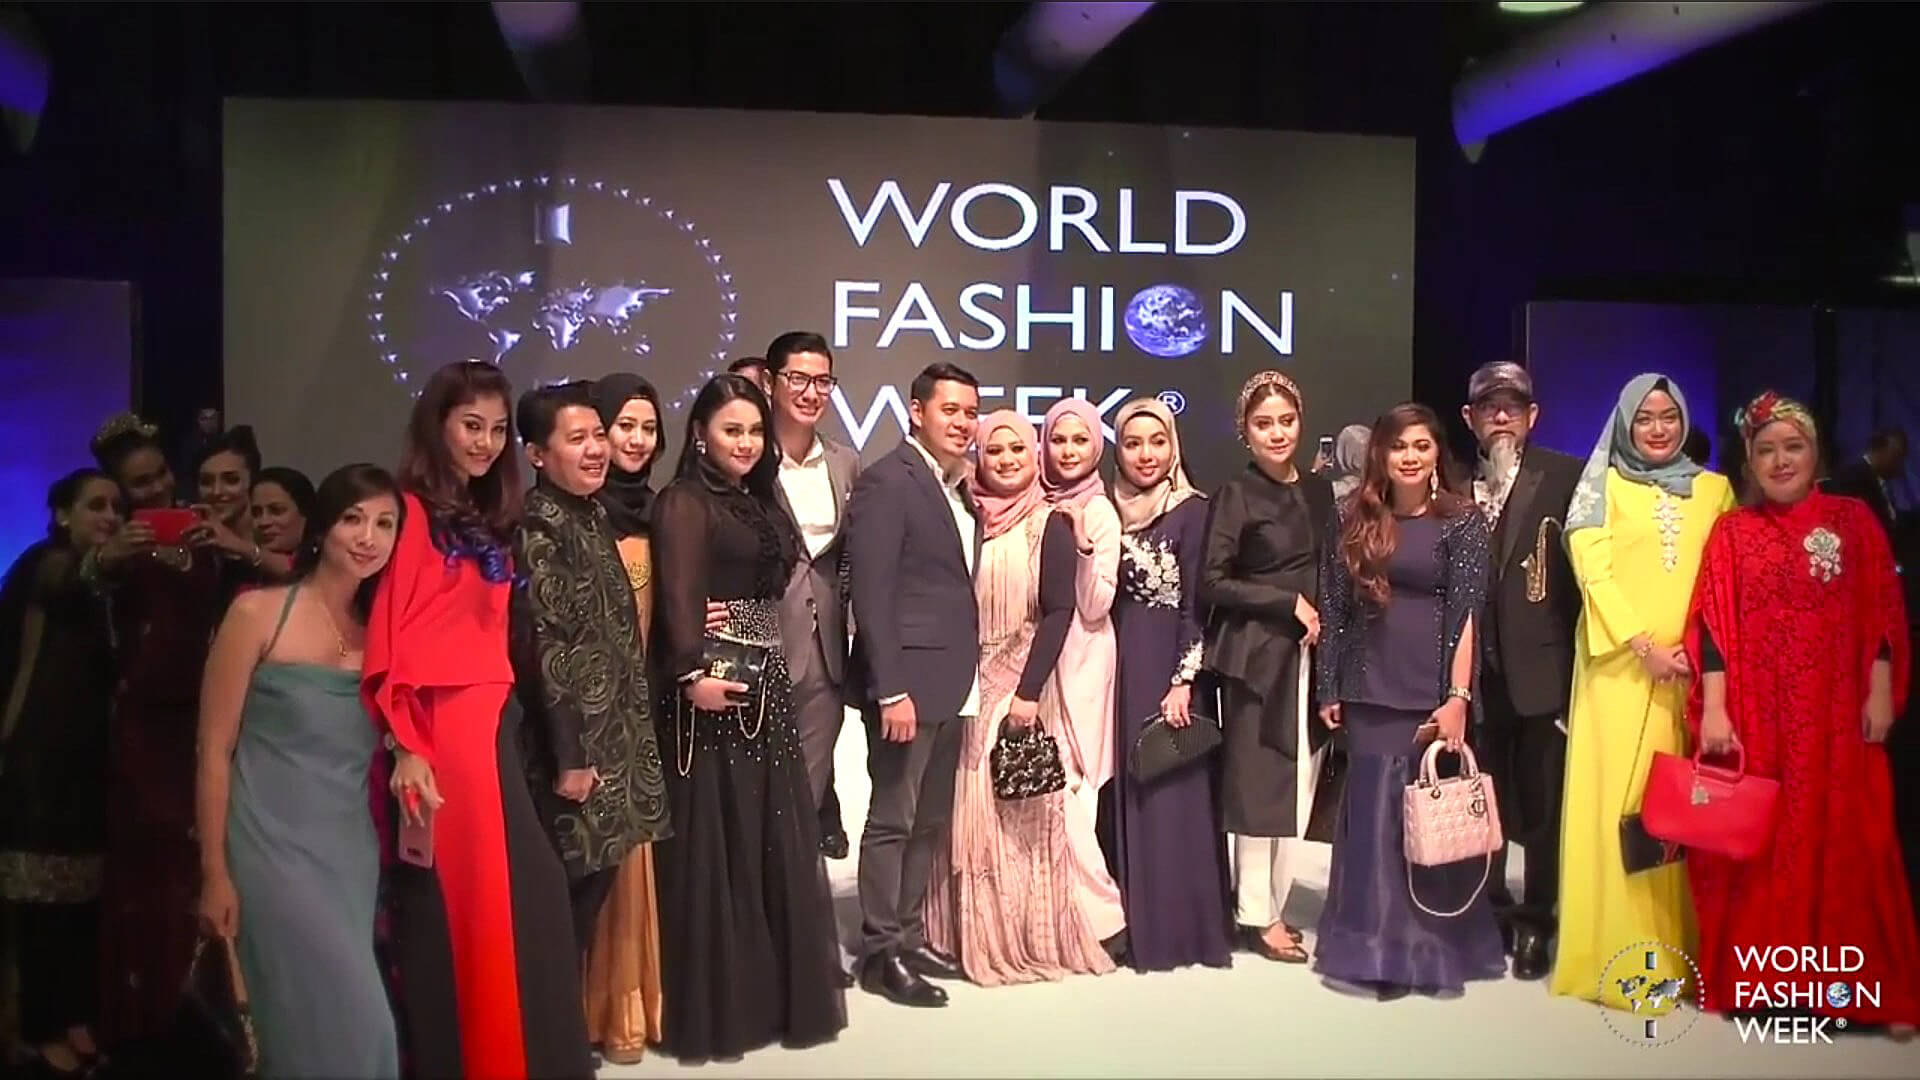 World Fashion Week<sup>®</sup> Malaysia 2017 celebrated cultural diversity & the beauty, power & artistic global movement of fashion